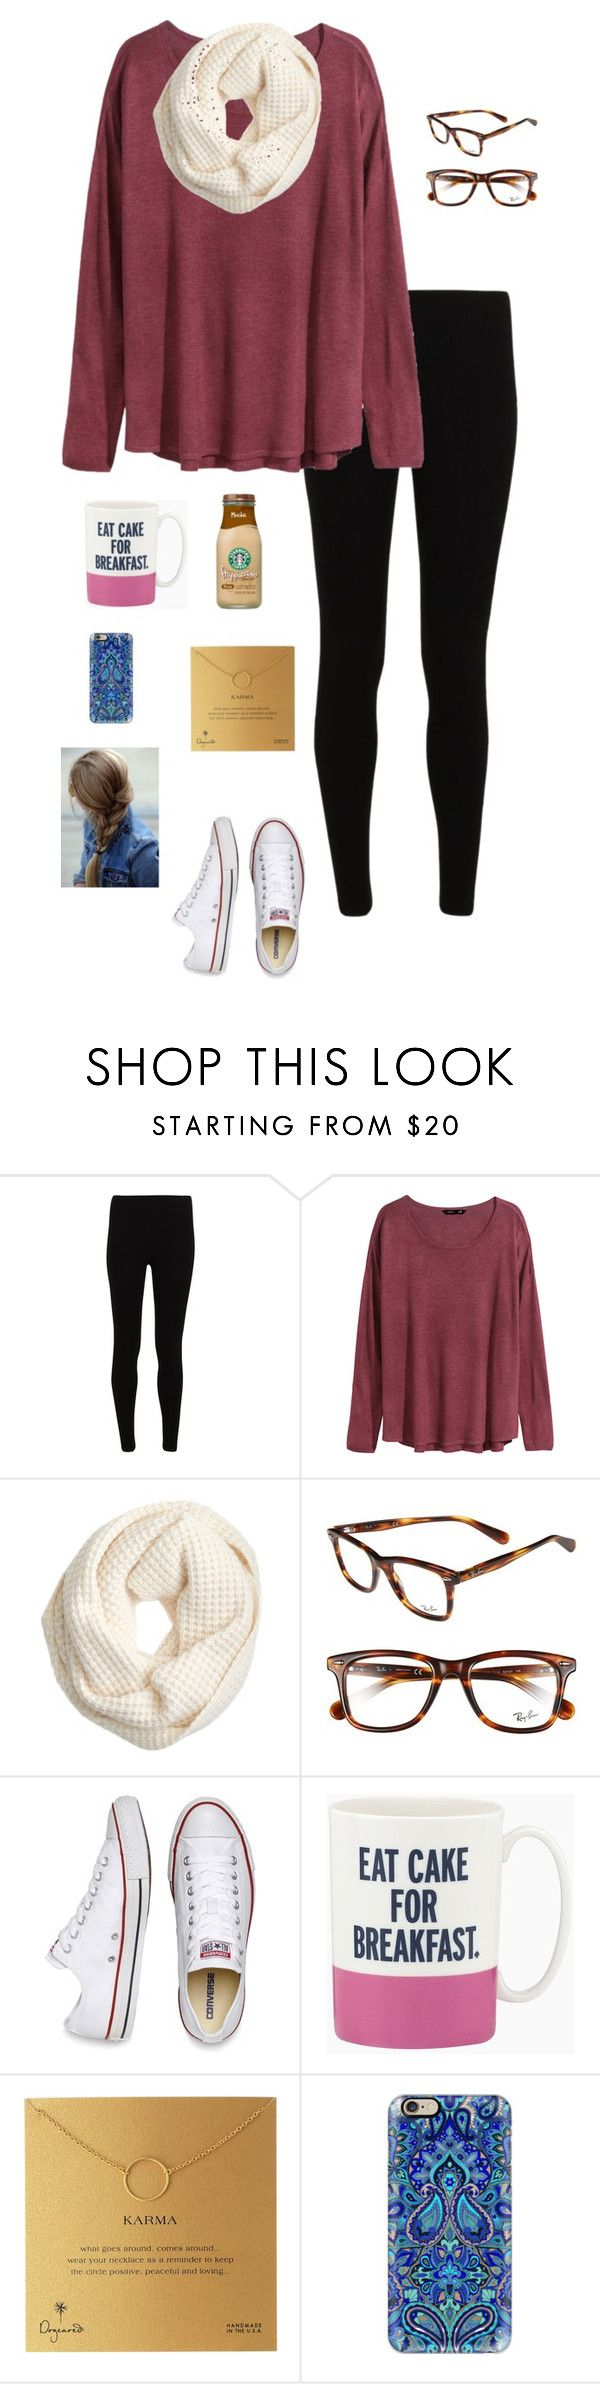 """""""I is for Infinity scarves!!"""" by gabbbsss ❤ liked on Polyvore featuring H&M, J.Crew, Ray-Ban, Converse, Kate Spade, Dogeared and Casetify"""